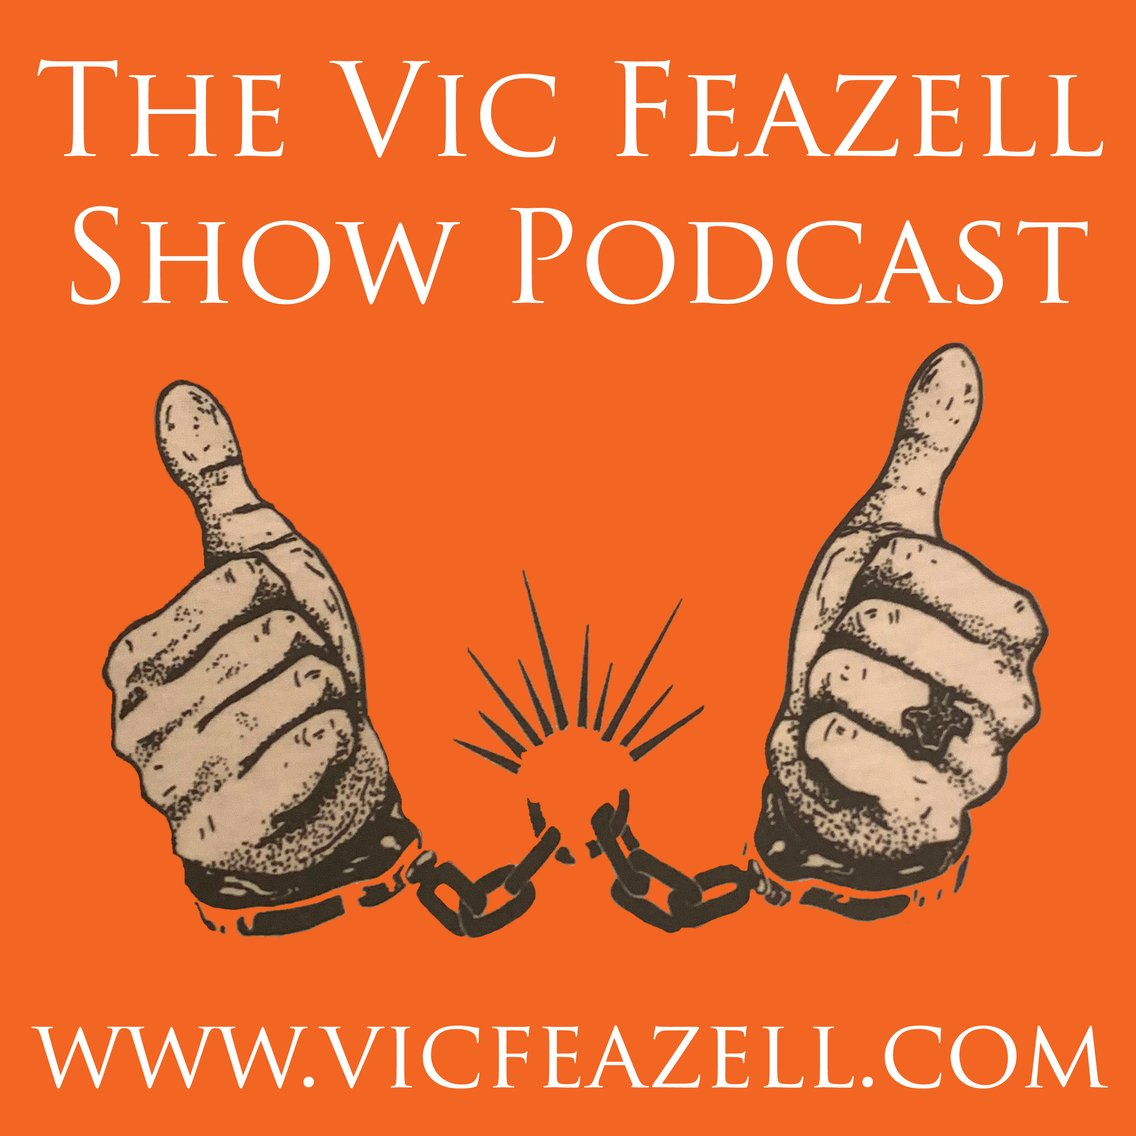 The Vic Feazell Show - Cover Image